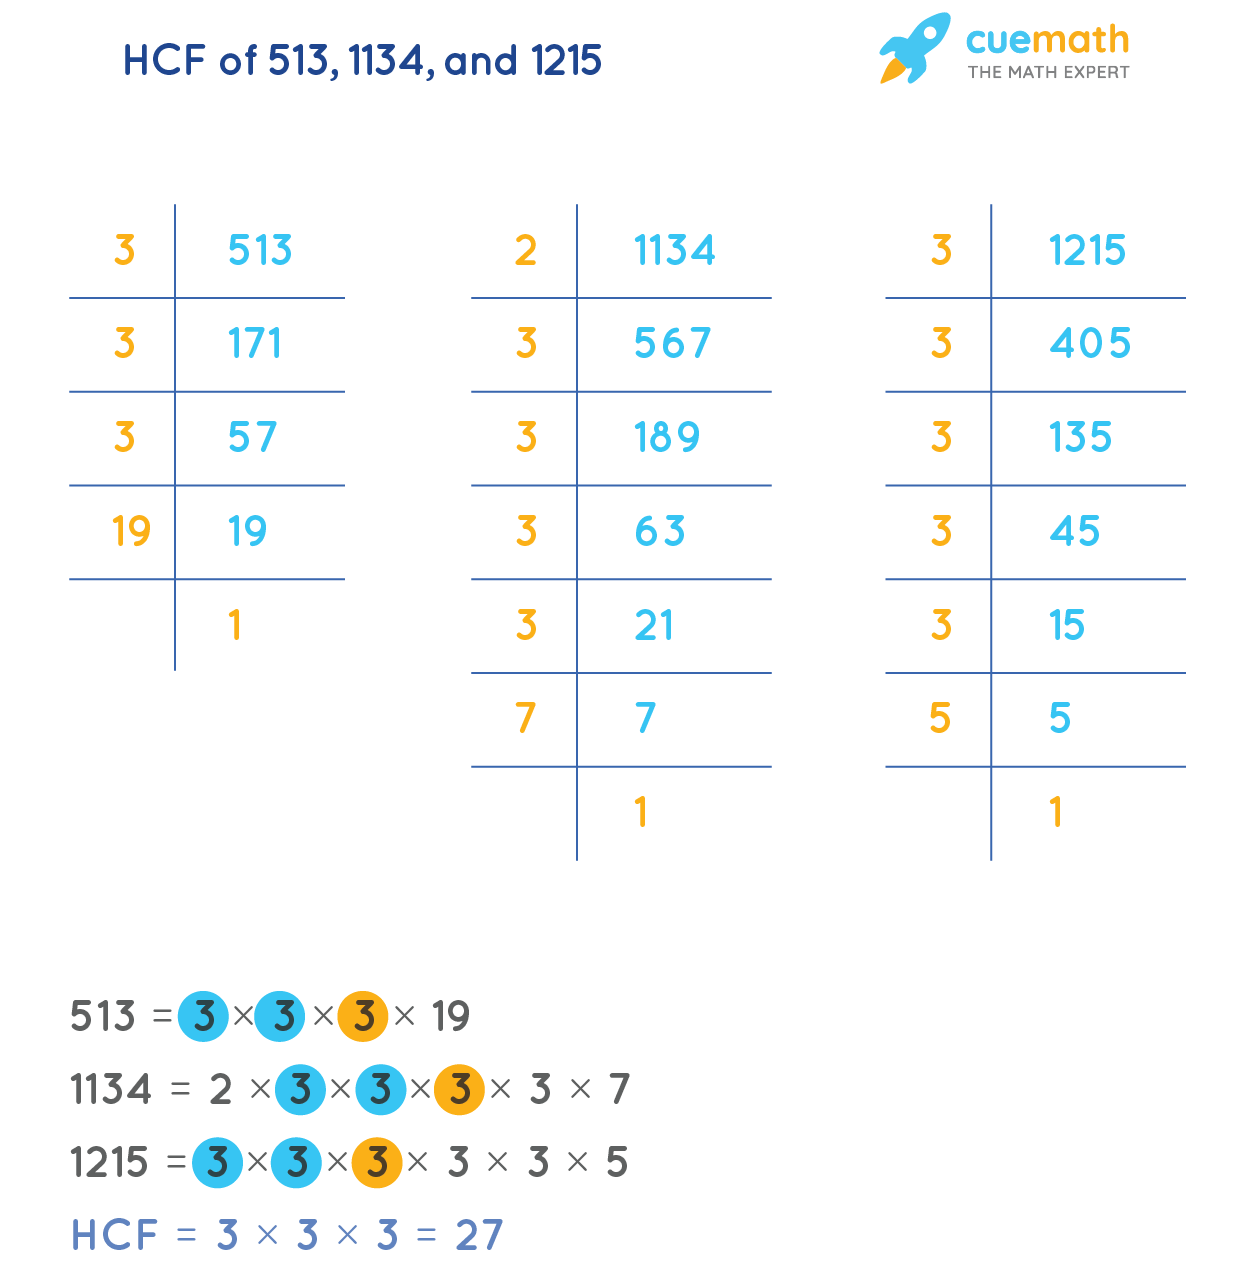 HCF of 513, 1134,and 1215by Prime Factorization